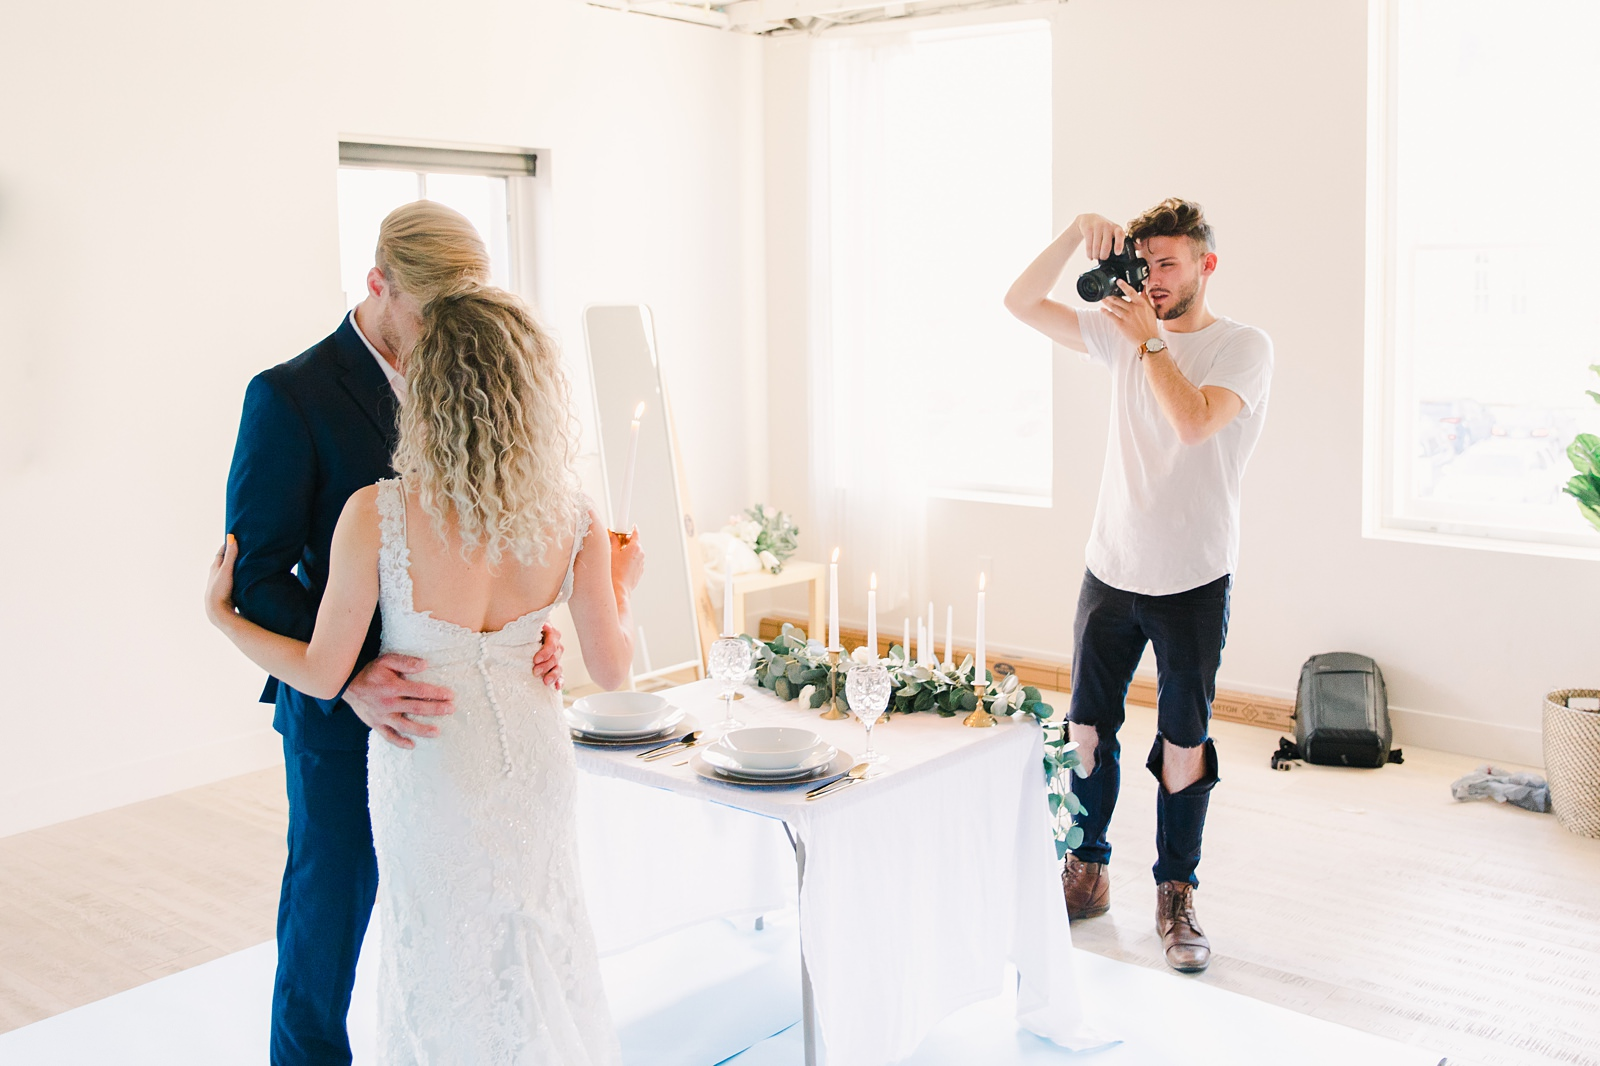 Utah wedding photographer and videographer, behind the scenes with bride and groom